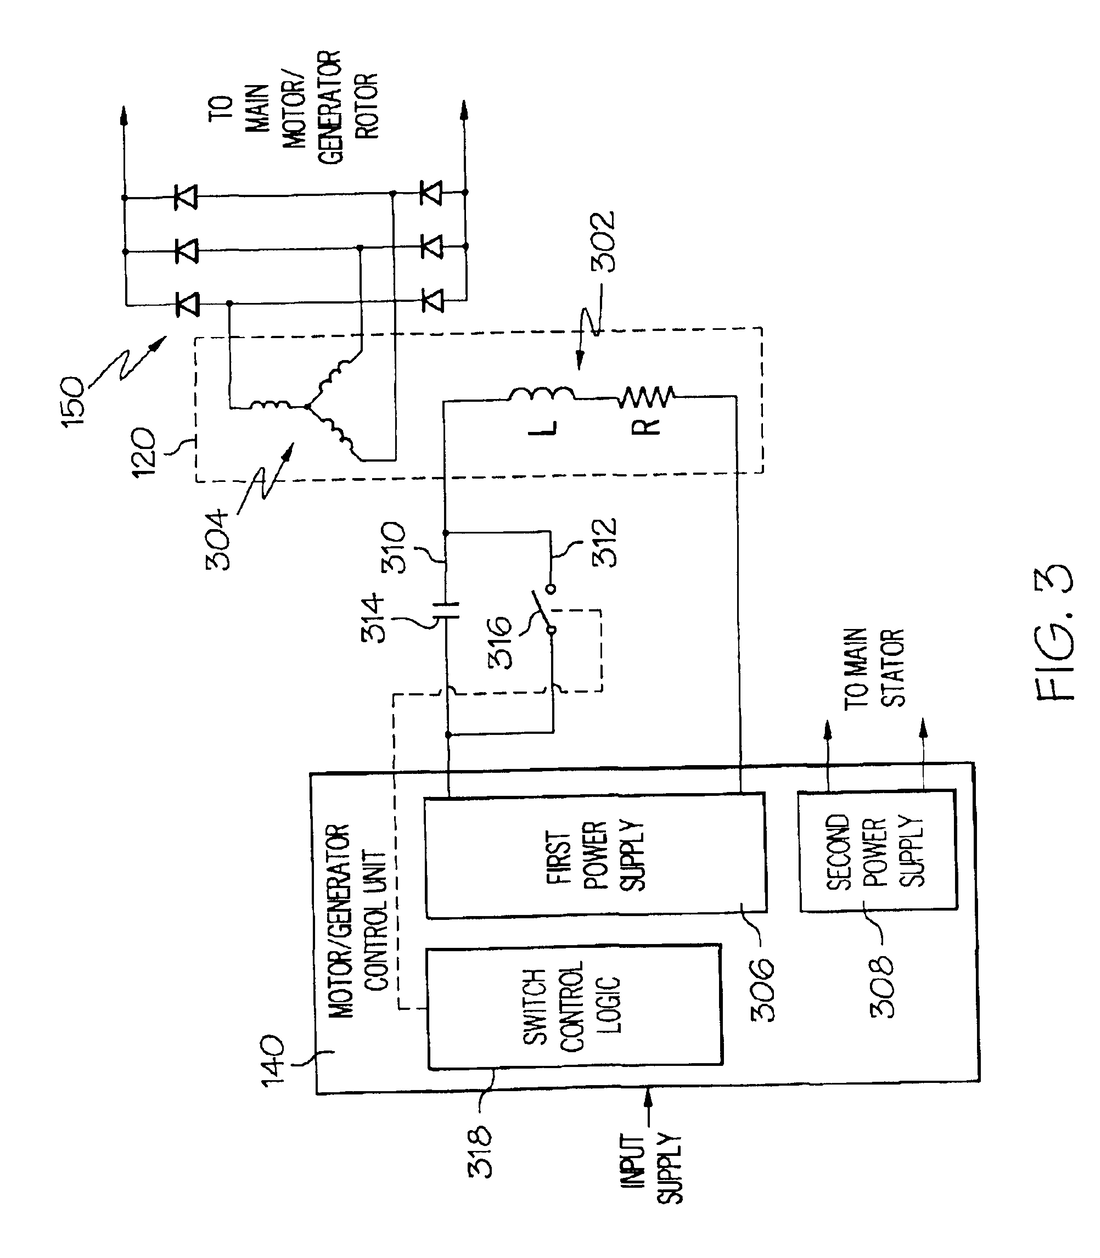 Circuits Drawing At Free For Personal Use Electronic Schematic 1100x1258 Patent Us5051681 Circuit A Single Phase Induction